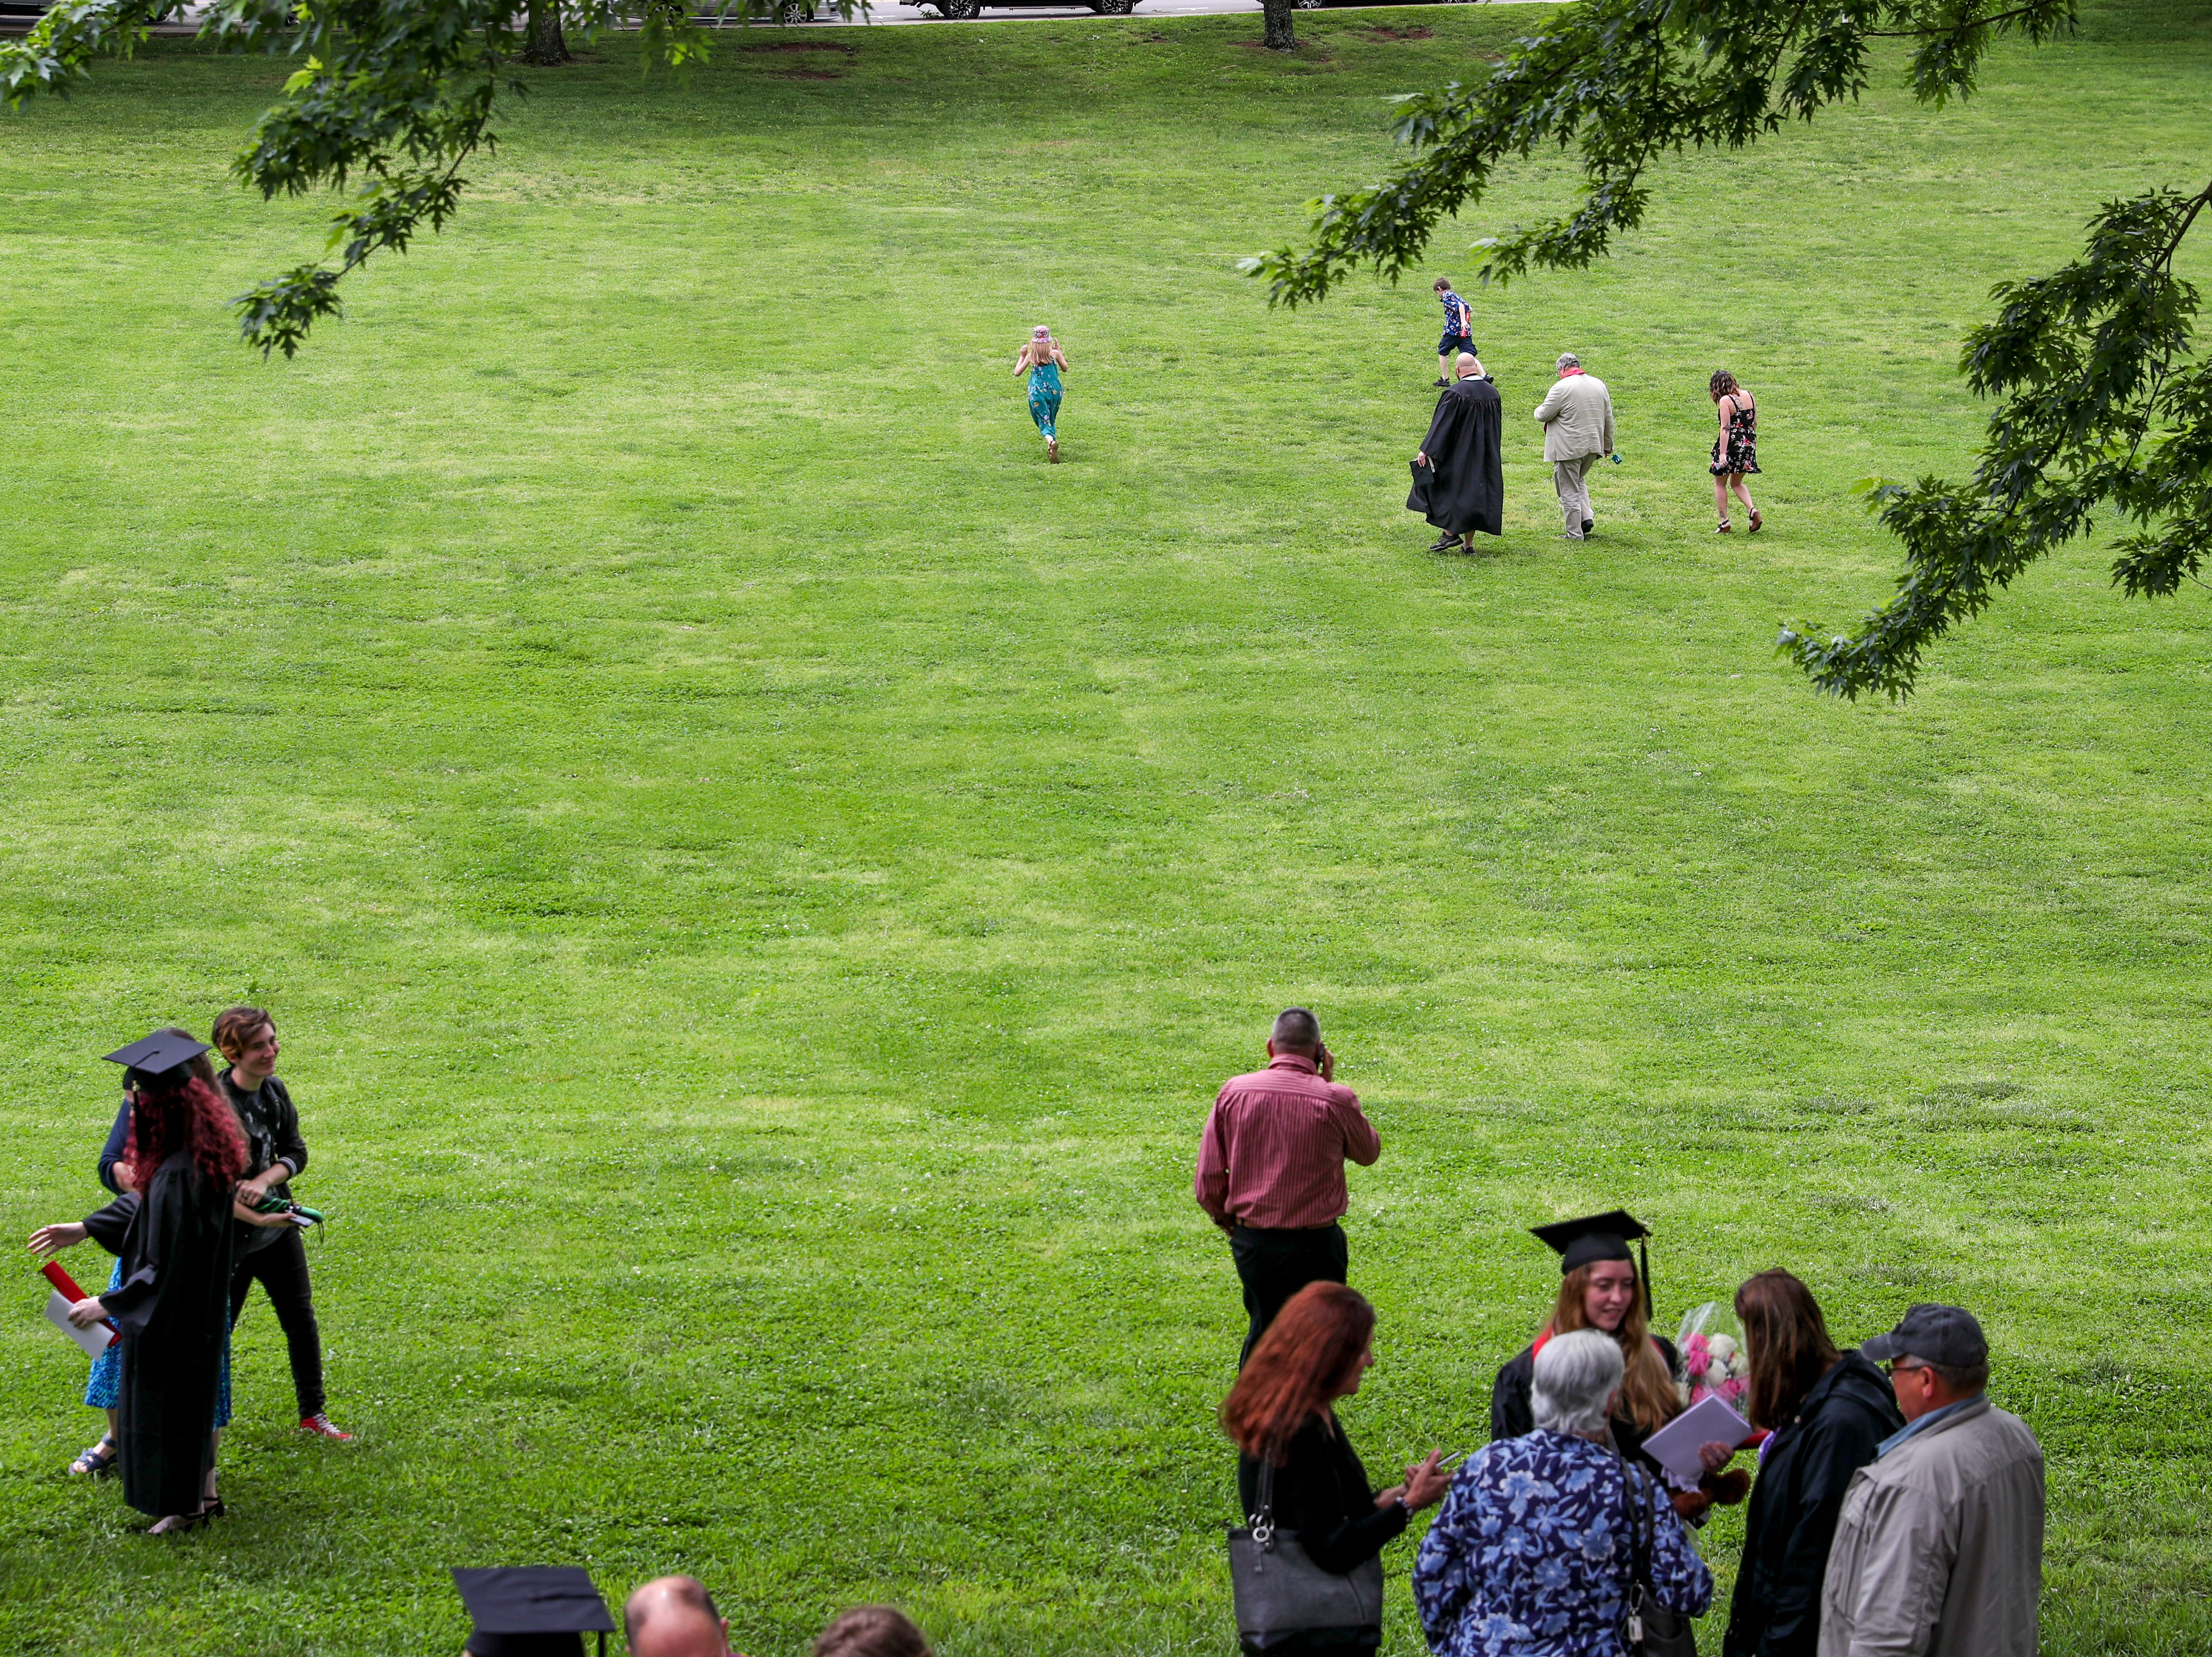 Families walk across the lawn at the Austin Peay spring commencement ceremony 2019 for College of Business and College of STEM at Winfield Dunn Center in Clarksville, Tenn., on Friday, May 3, 2019.